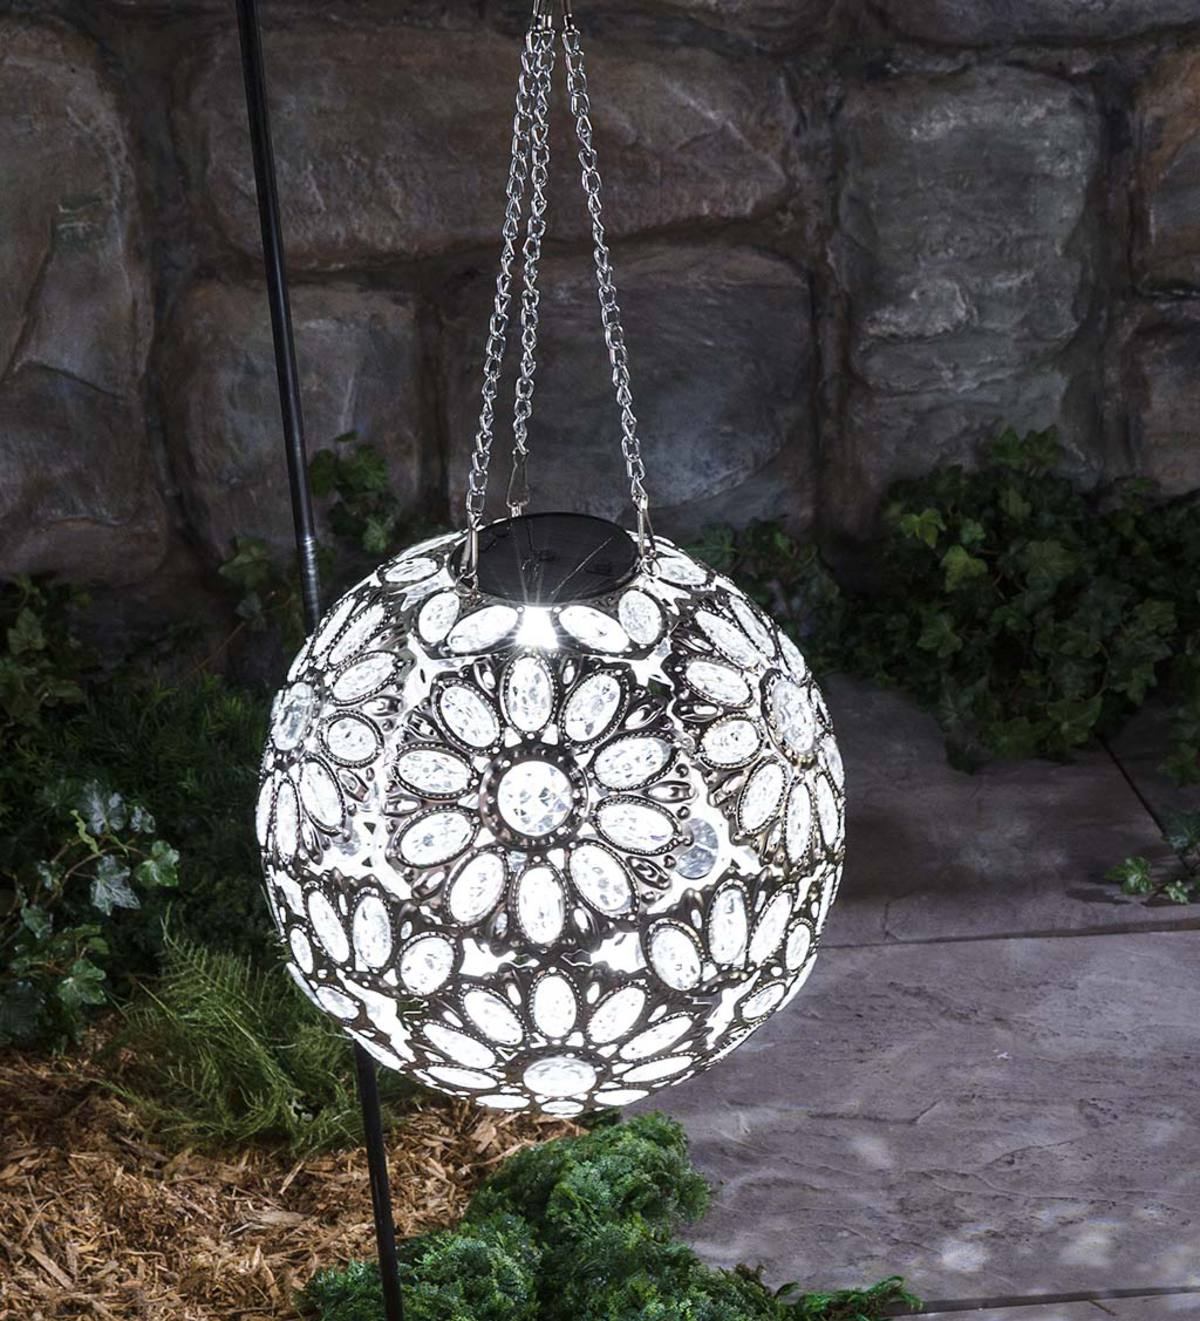 Hanging Solar Jewel Ball